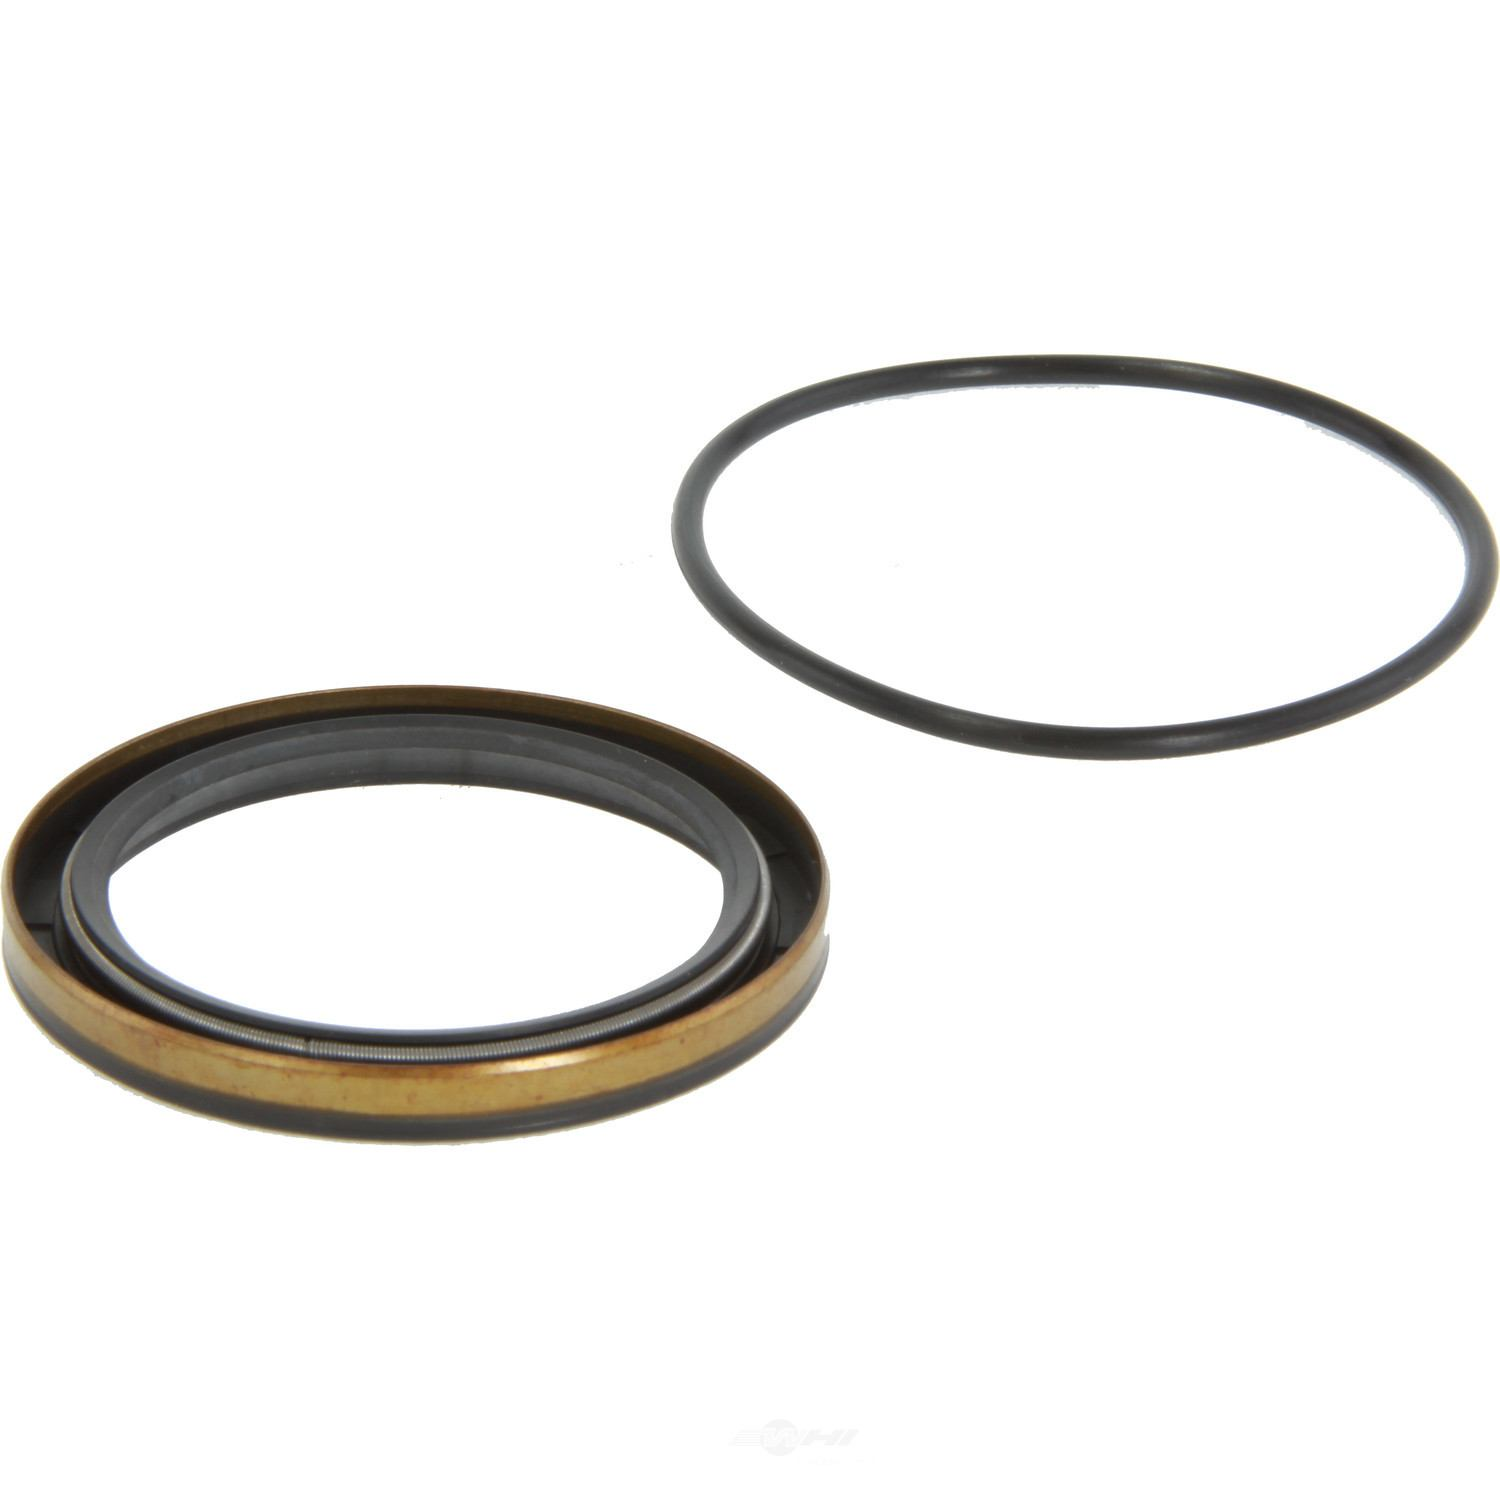 CENTRIC PARTS - Wheel Seal Kit - CEC 417.62025